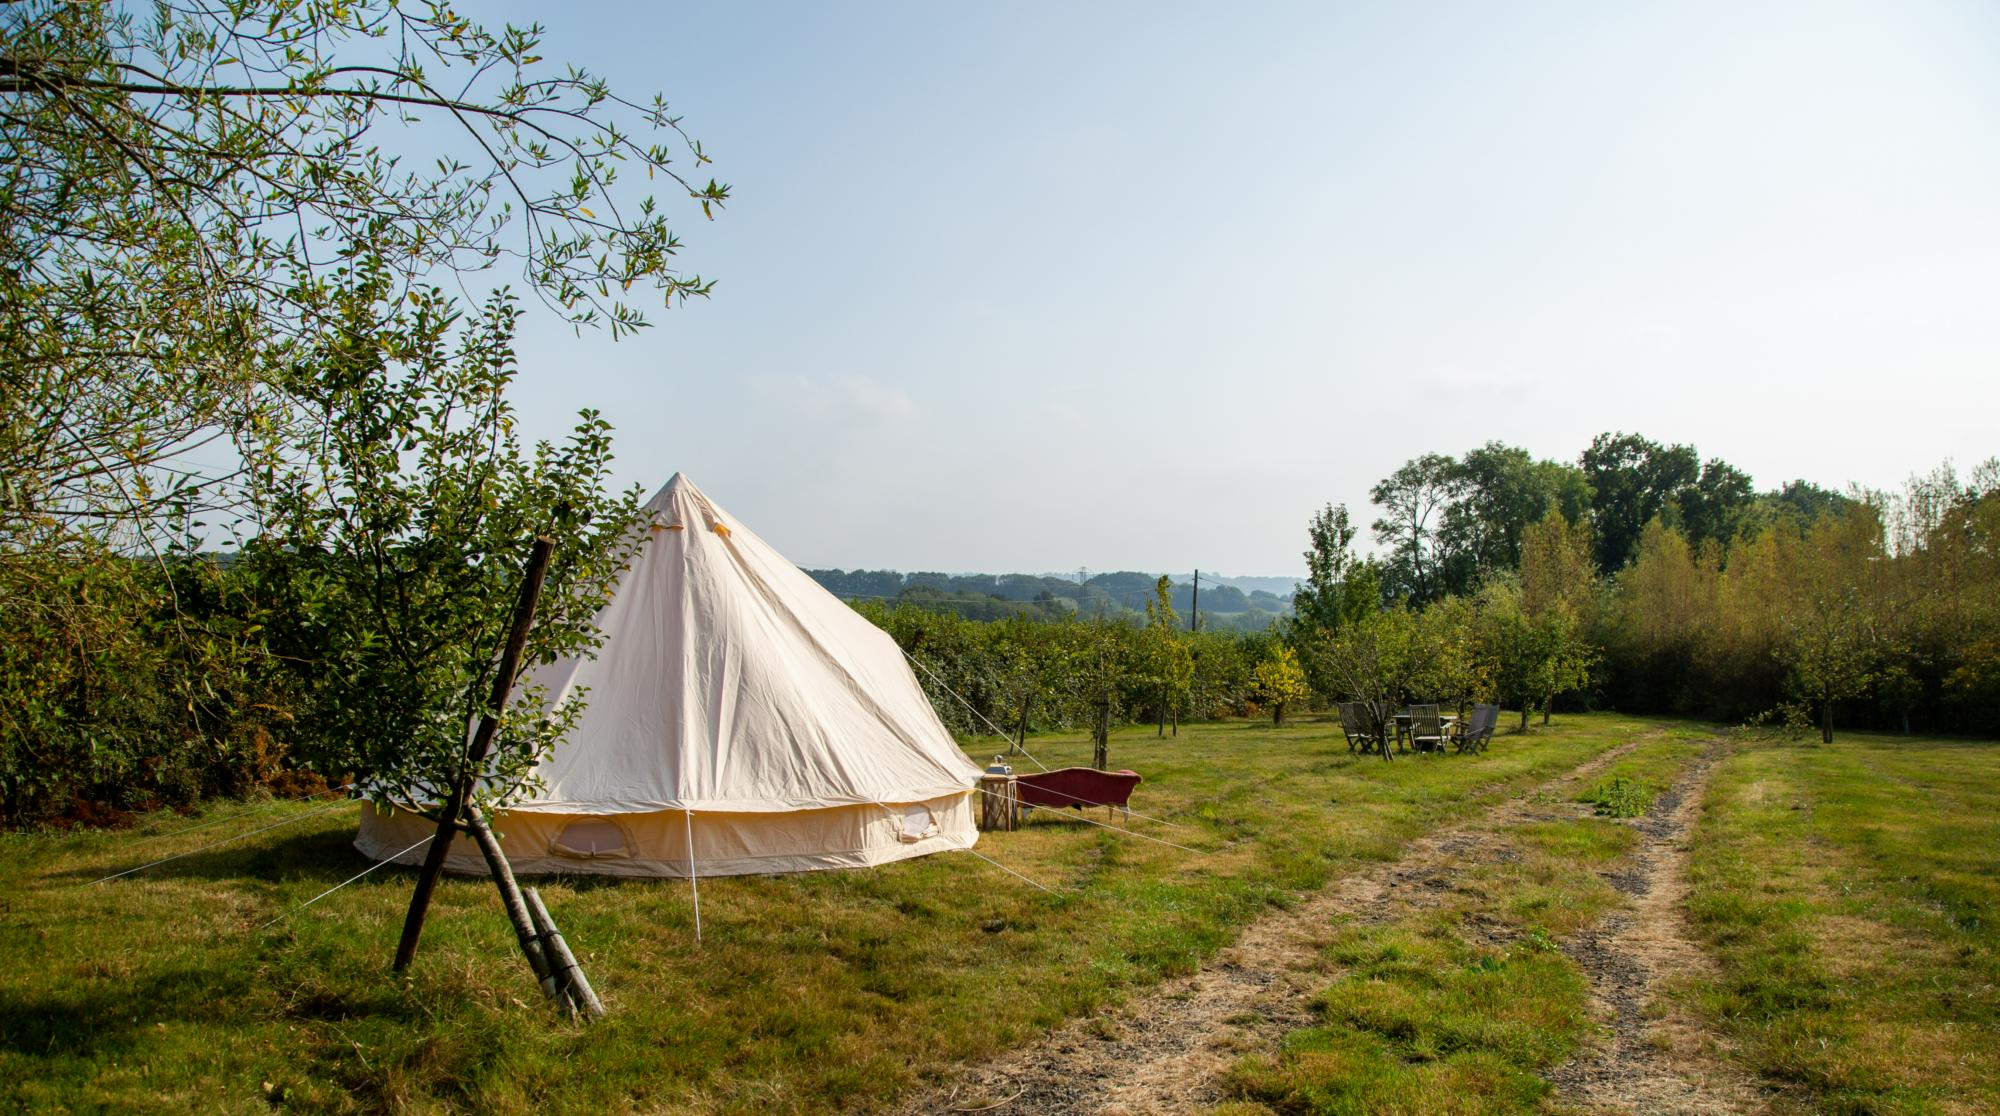 Campsites in South East England – I Love This Campsite